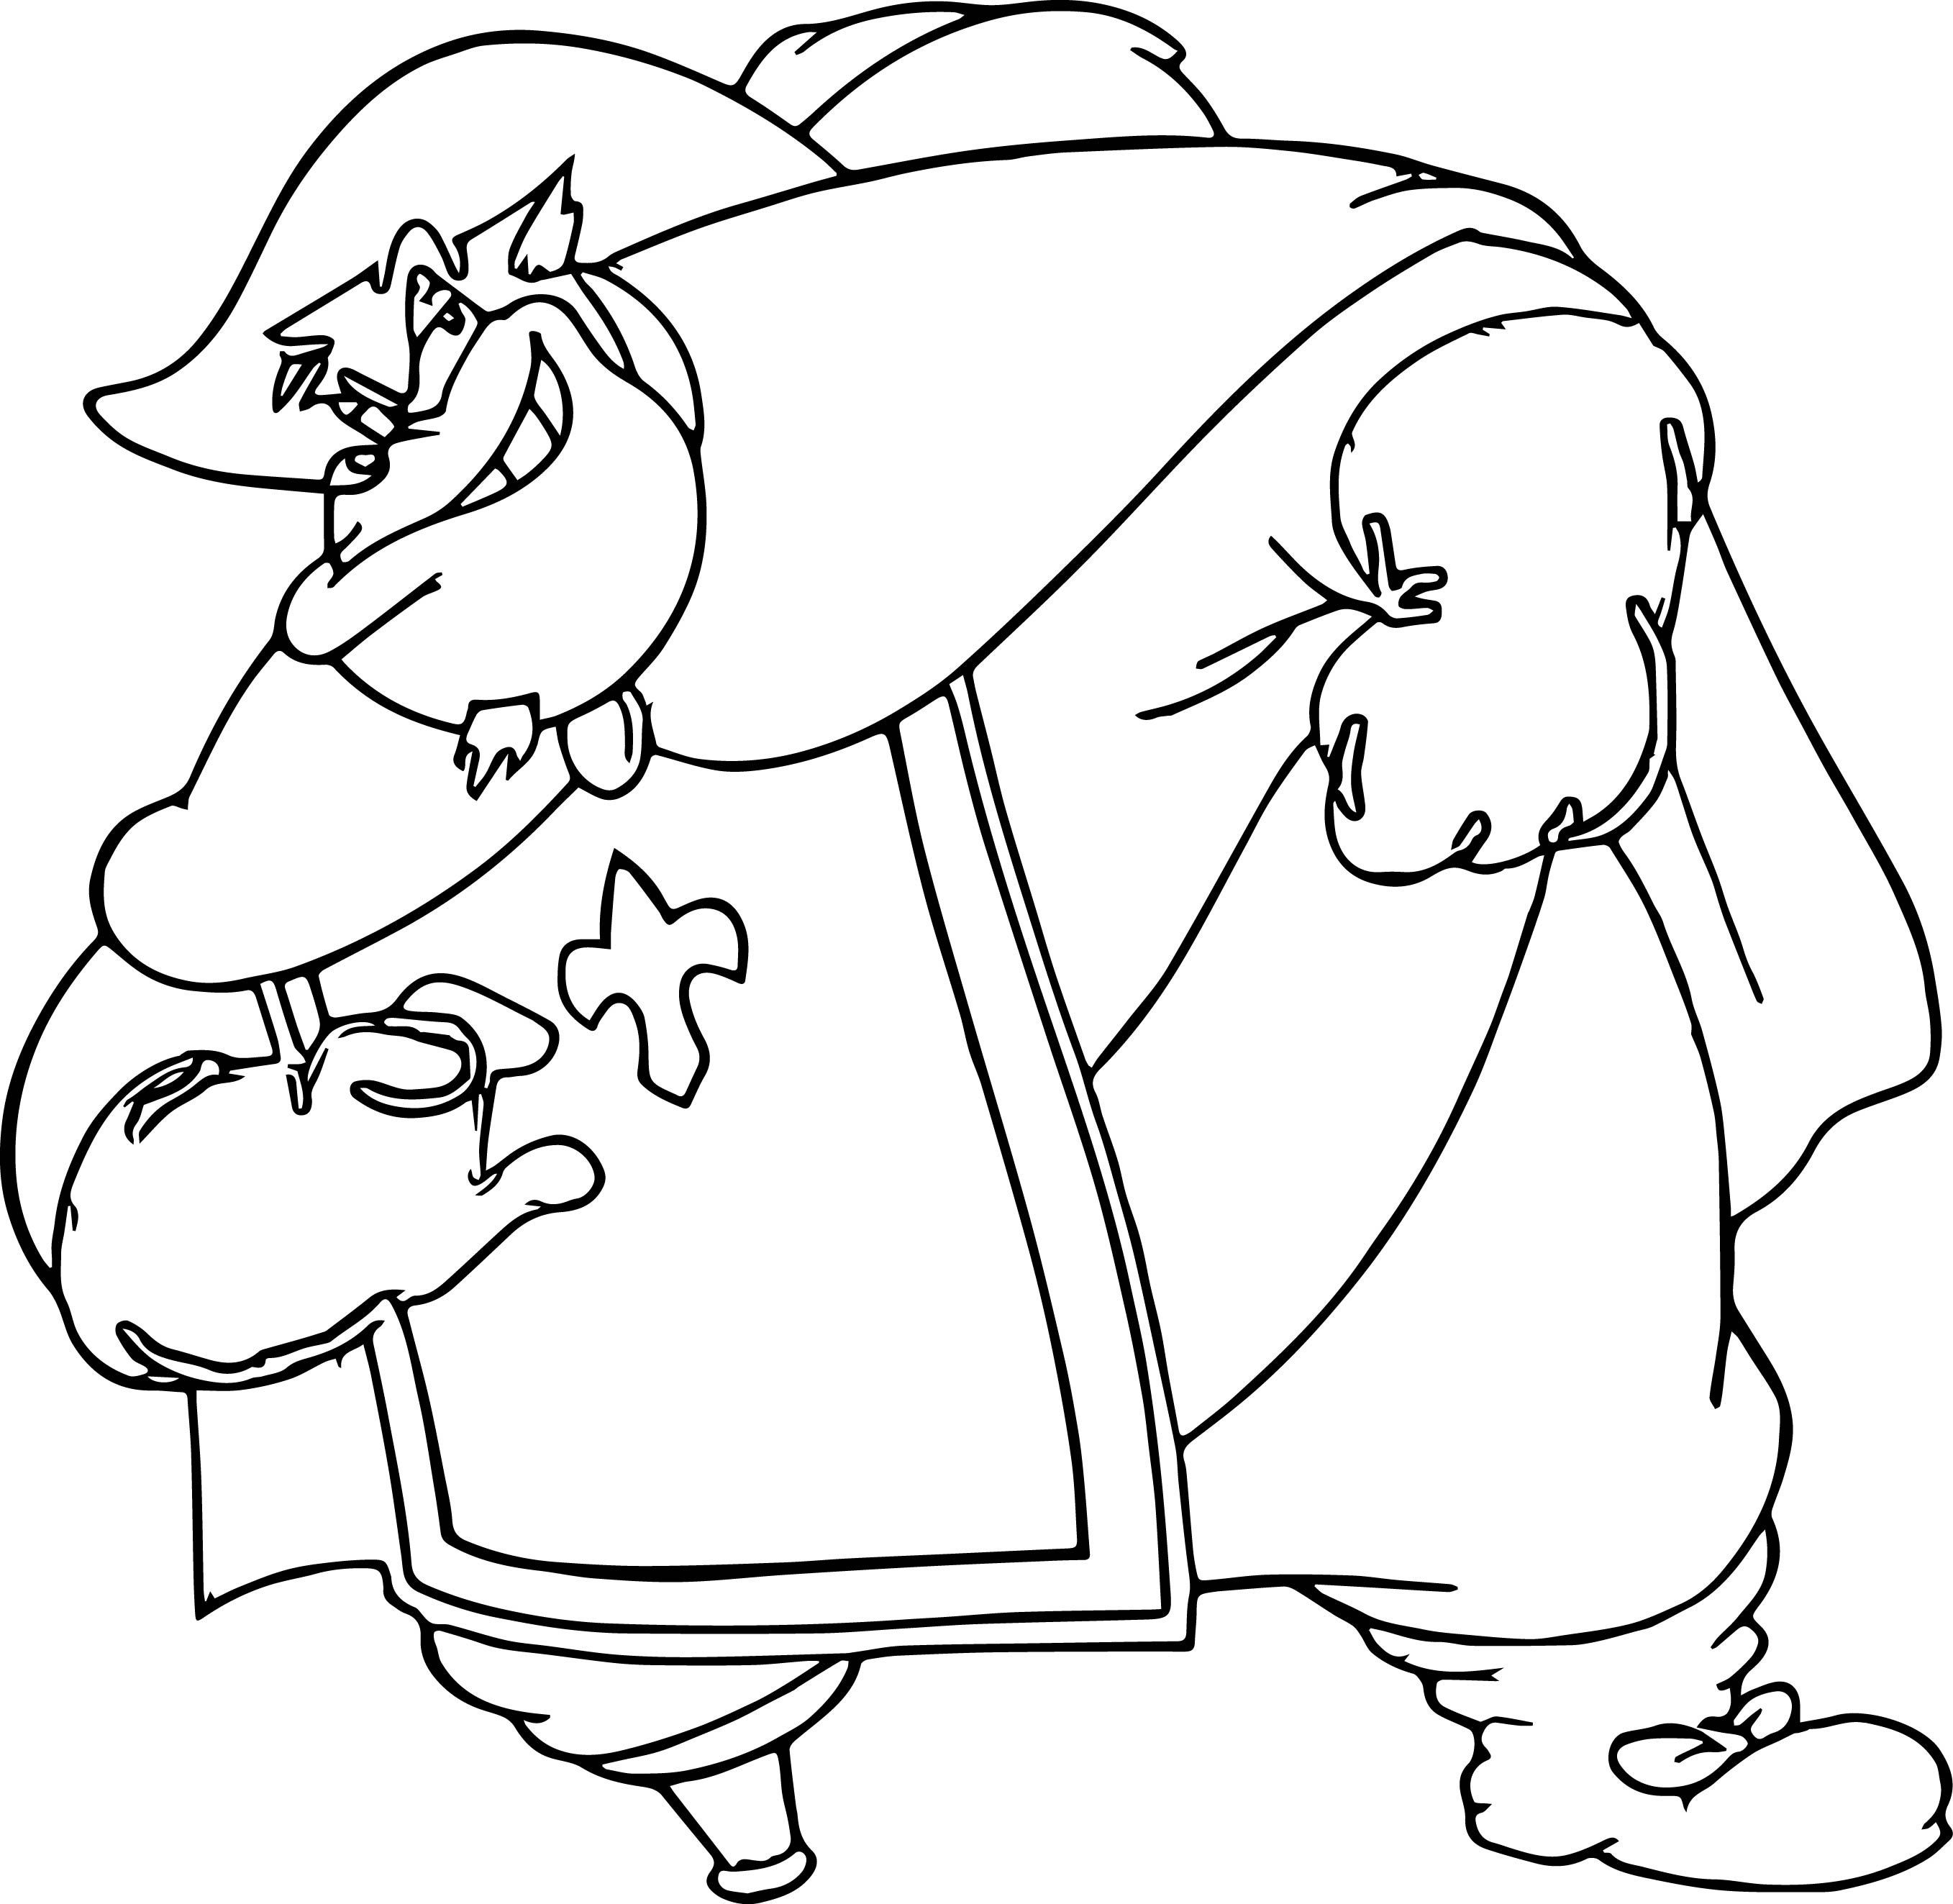 Disney the three musketeers pete coloring pages